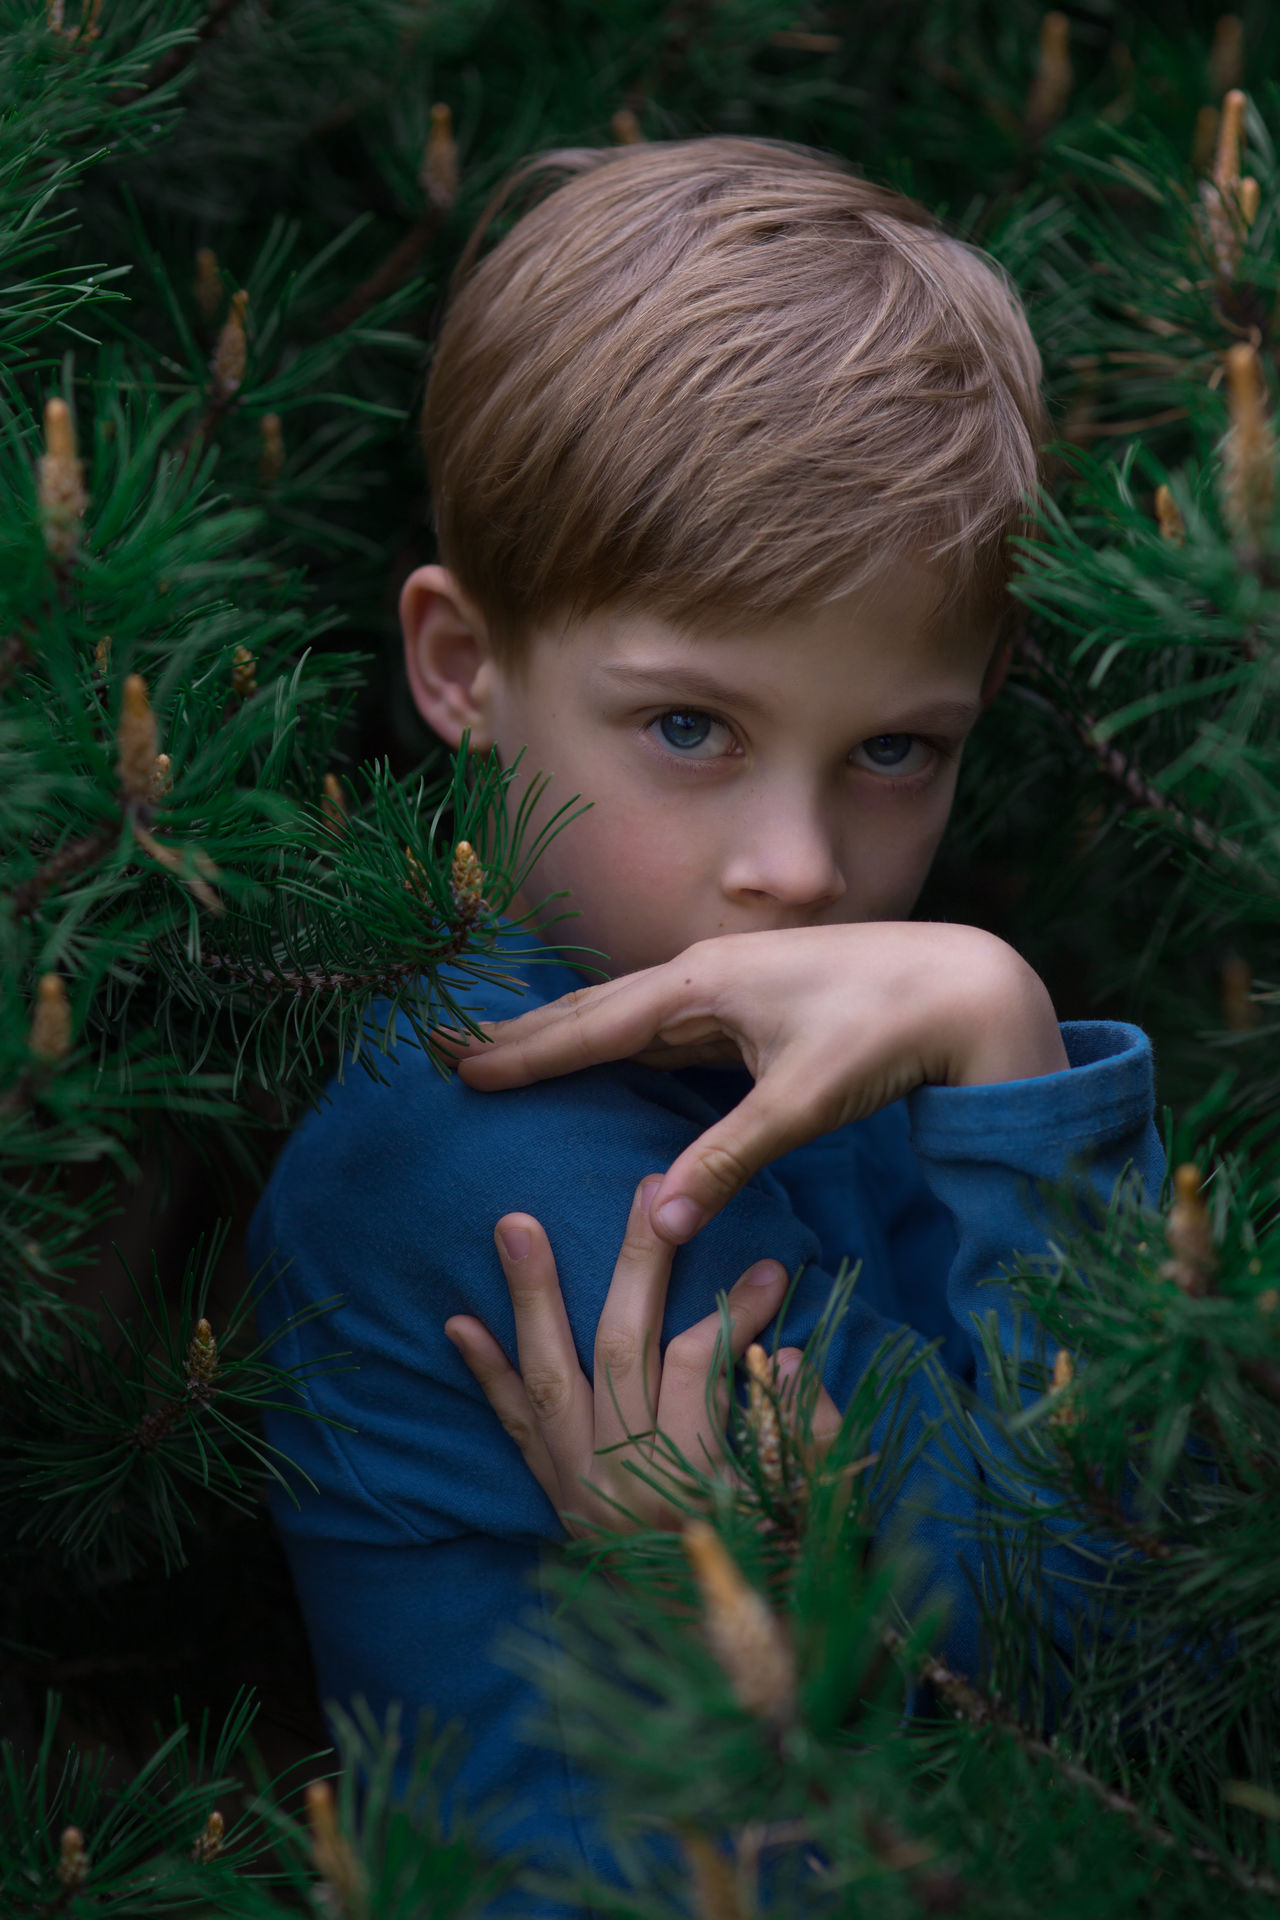 Blond Hair Boys Childhood Close-up Day Elementary Age Grass Green Color Human Hand Nature One Boy Only One Person Outdoors Plant Real People The Portraitist - 2017 EyeEm Awards Tree